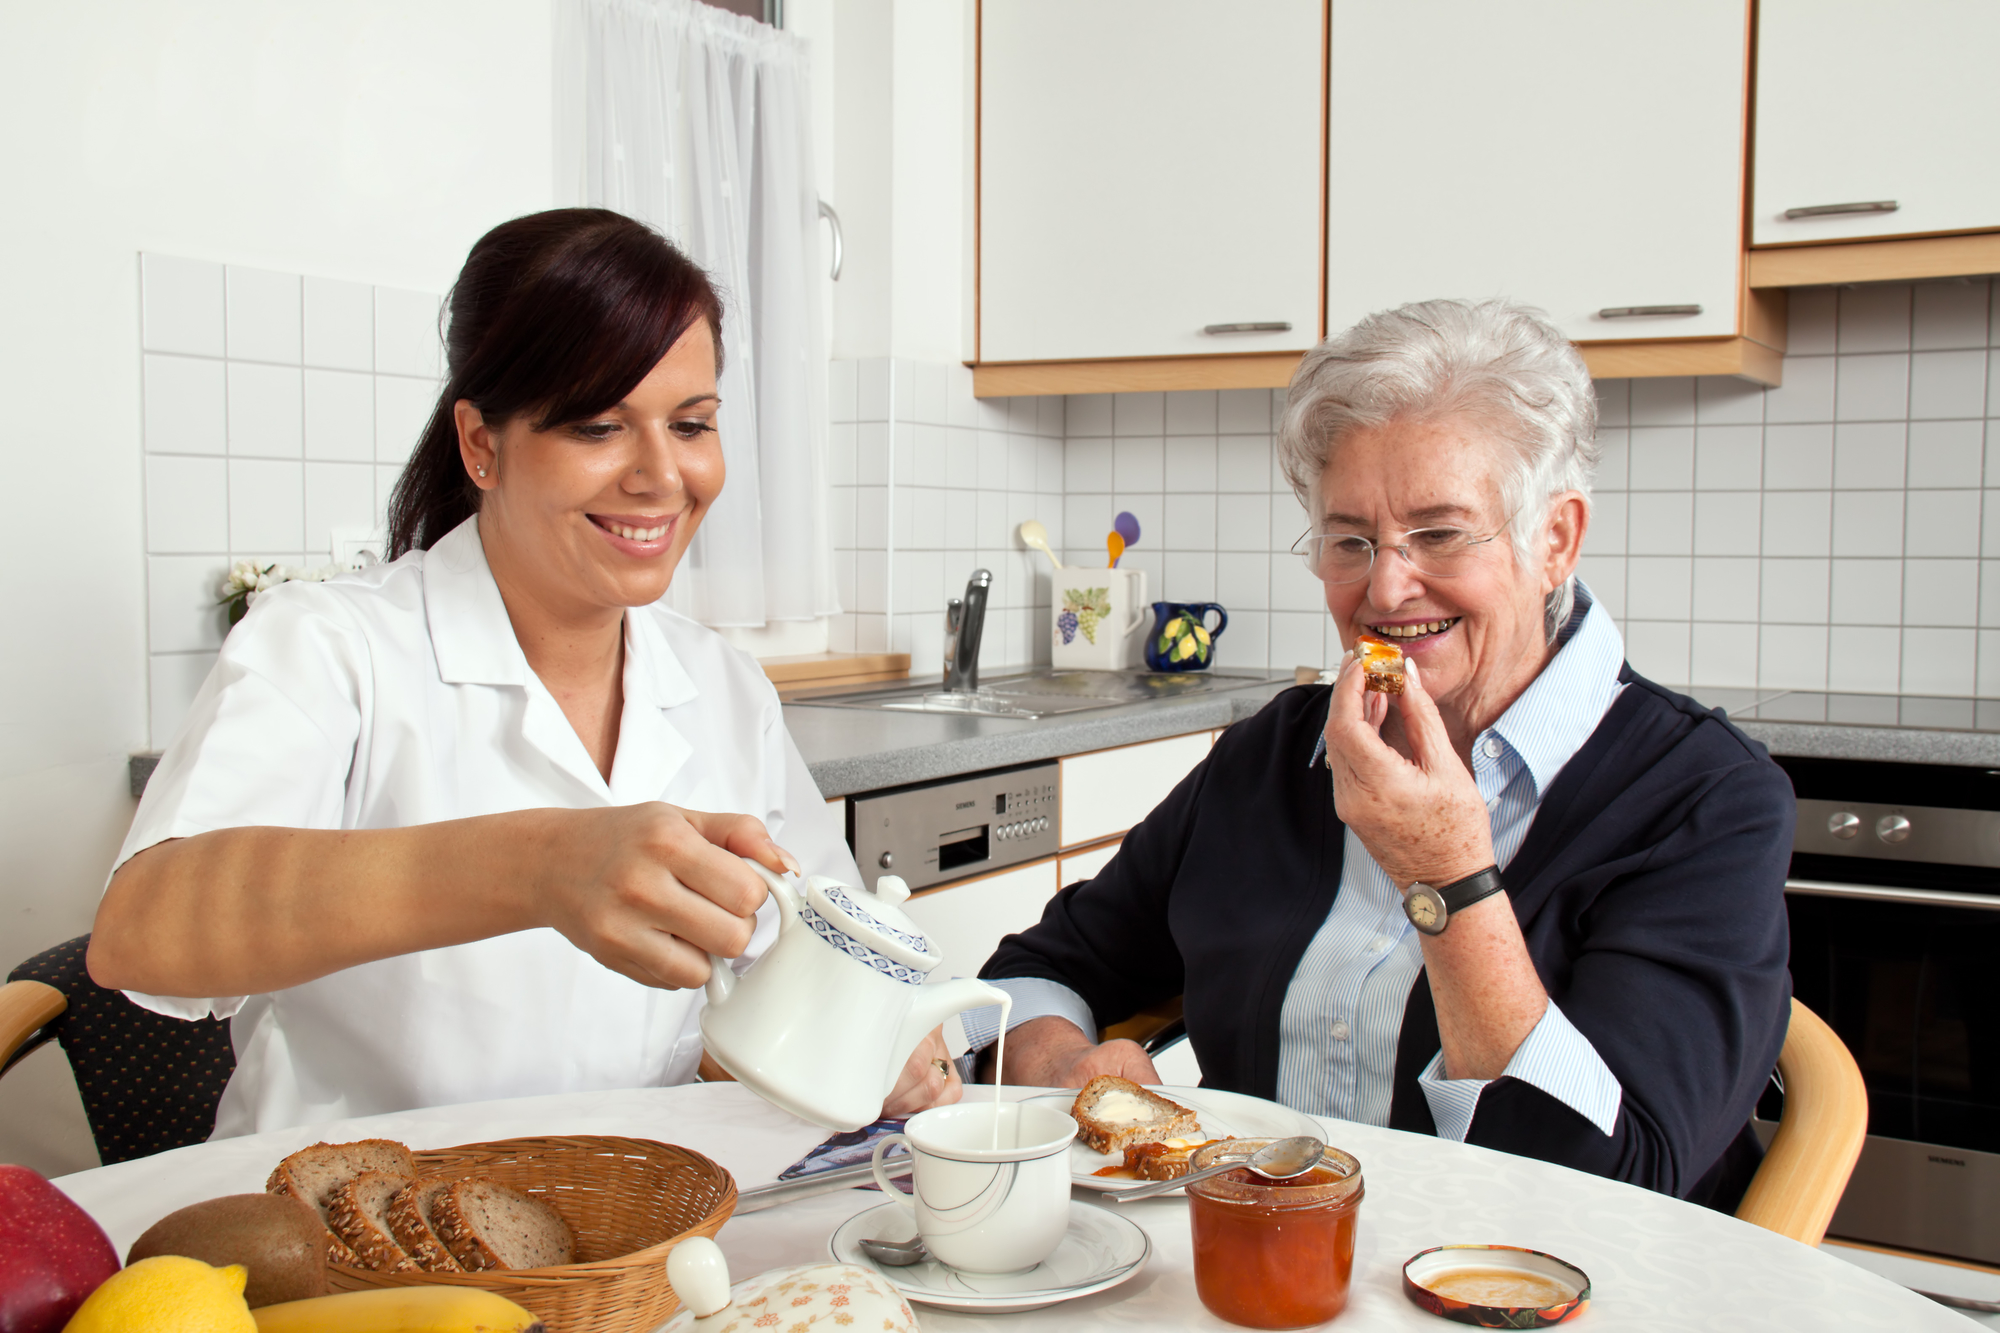 Homemaker Service and Homemaker Companionship Service in Florida